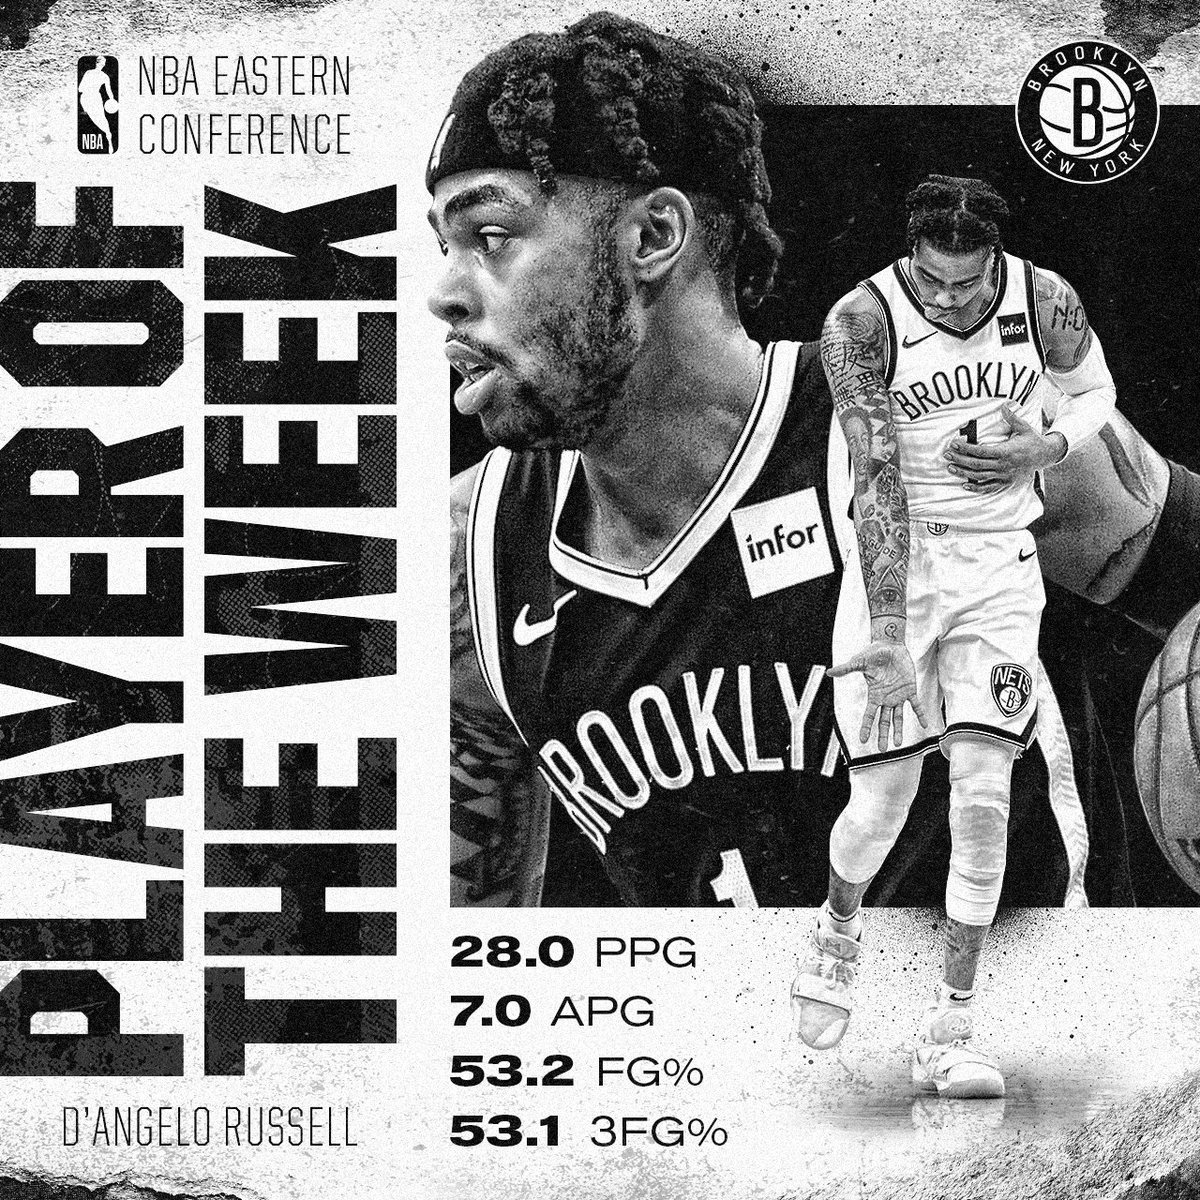 After leading the Nets to a 3-0 record, your @NBA Eastern Conference Player of the week: D'ANGELO RUSSELL.  💉❄️ @Dloading  💉❄️